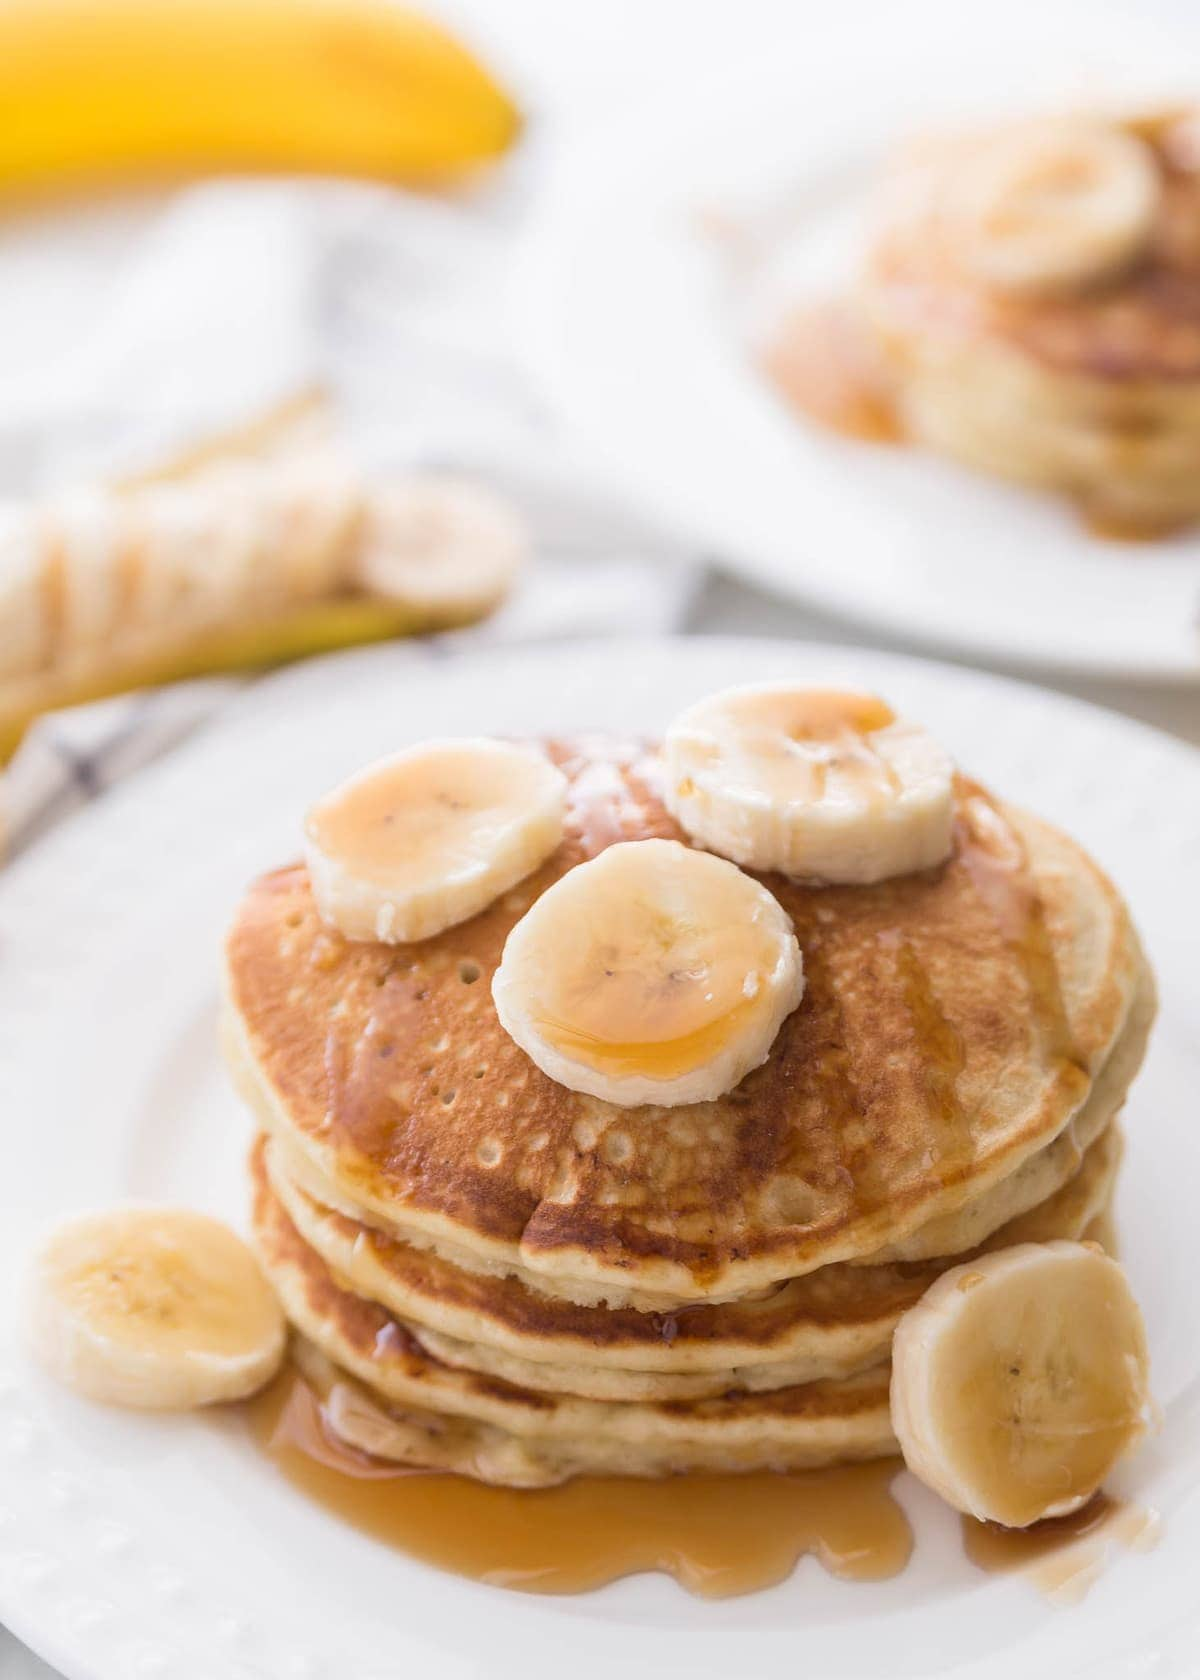 Banana Pancakes stacked on plate with fresh bananas on top